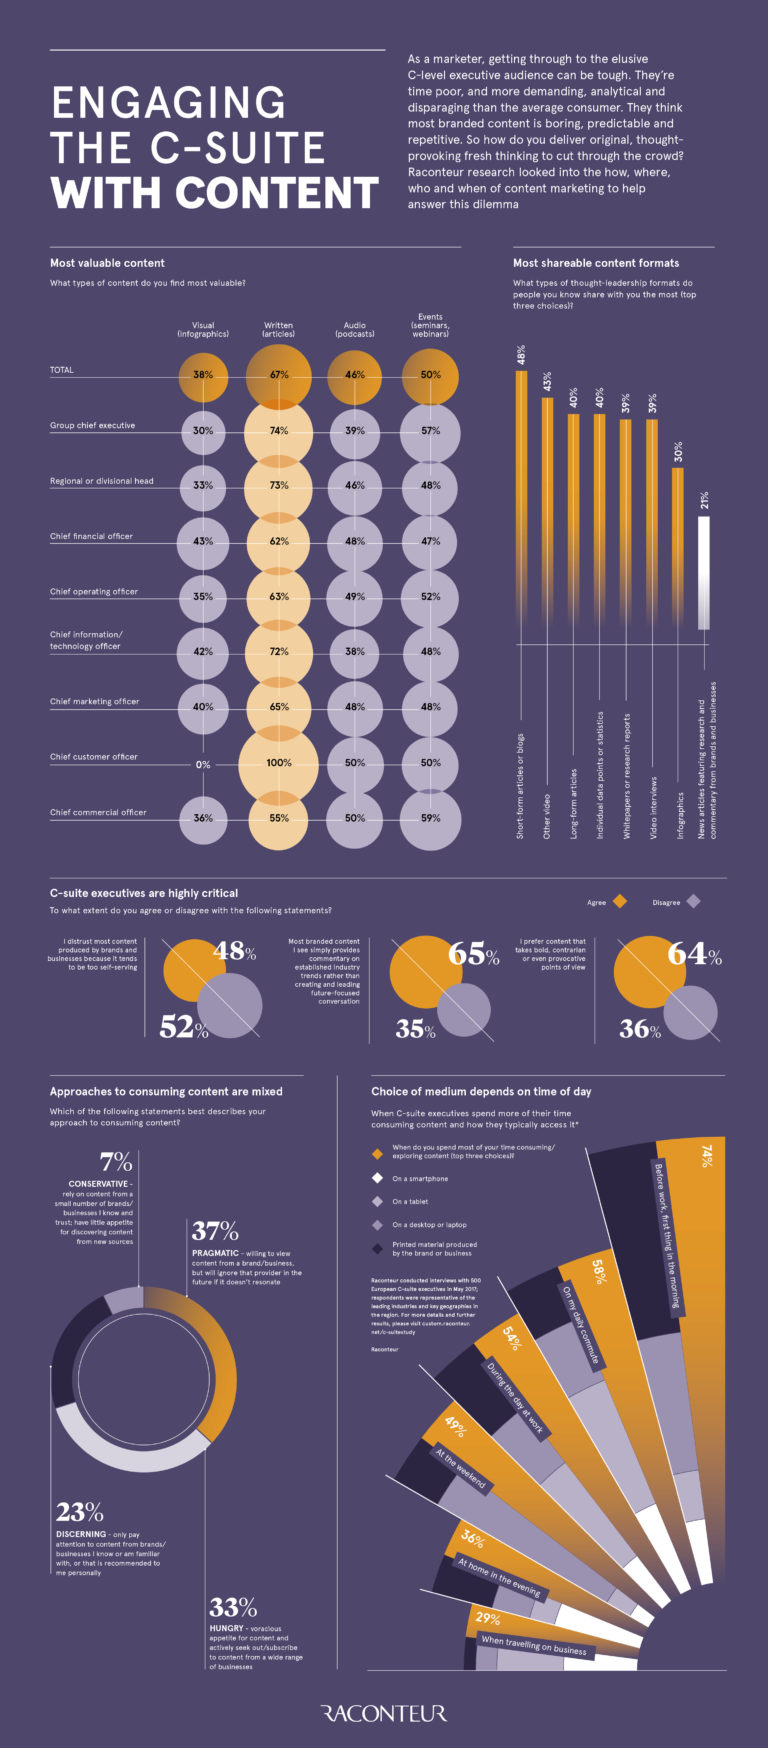 raconteur.net - Infographic: Engaging the C-Suite with content marketing